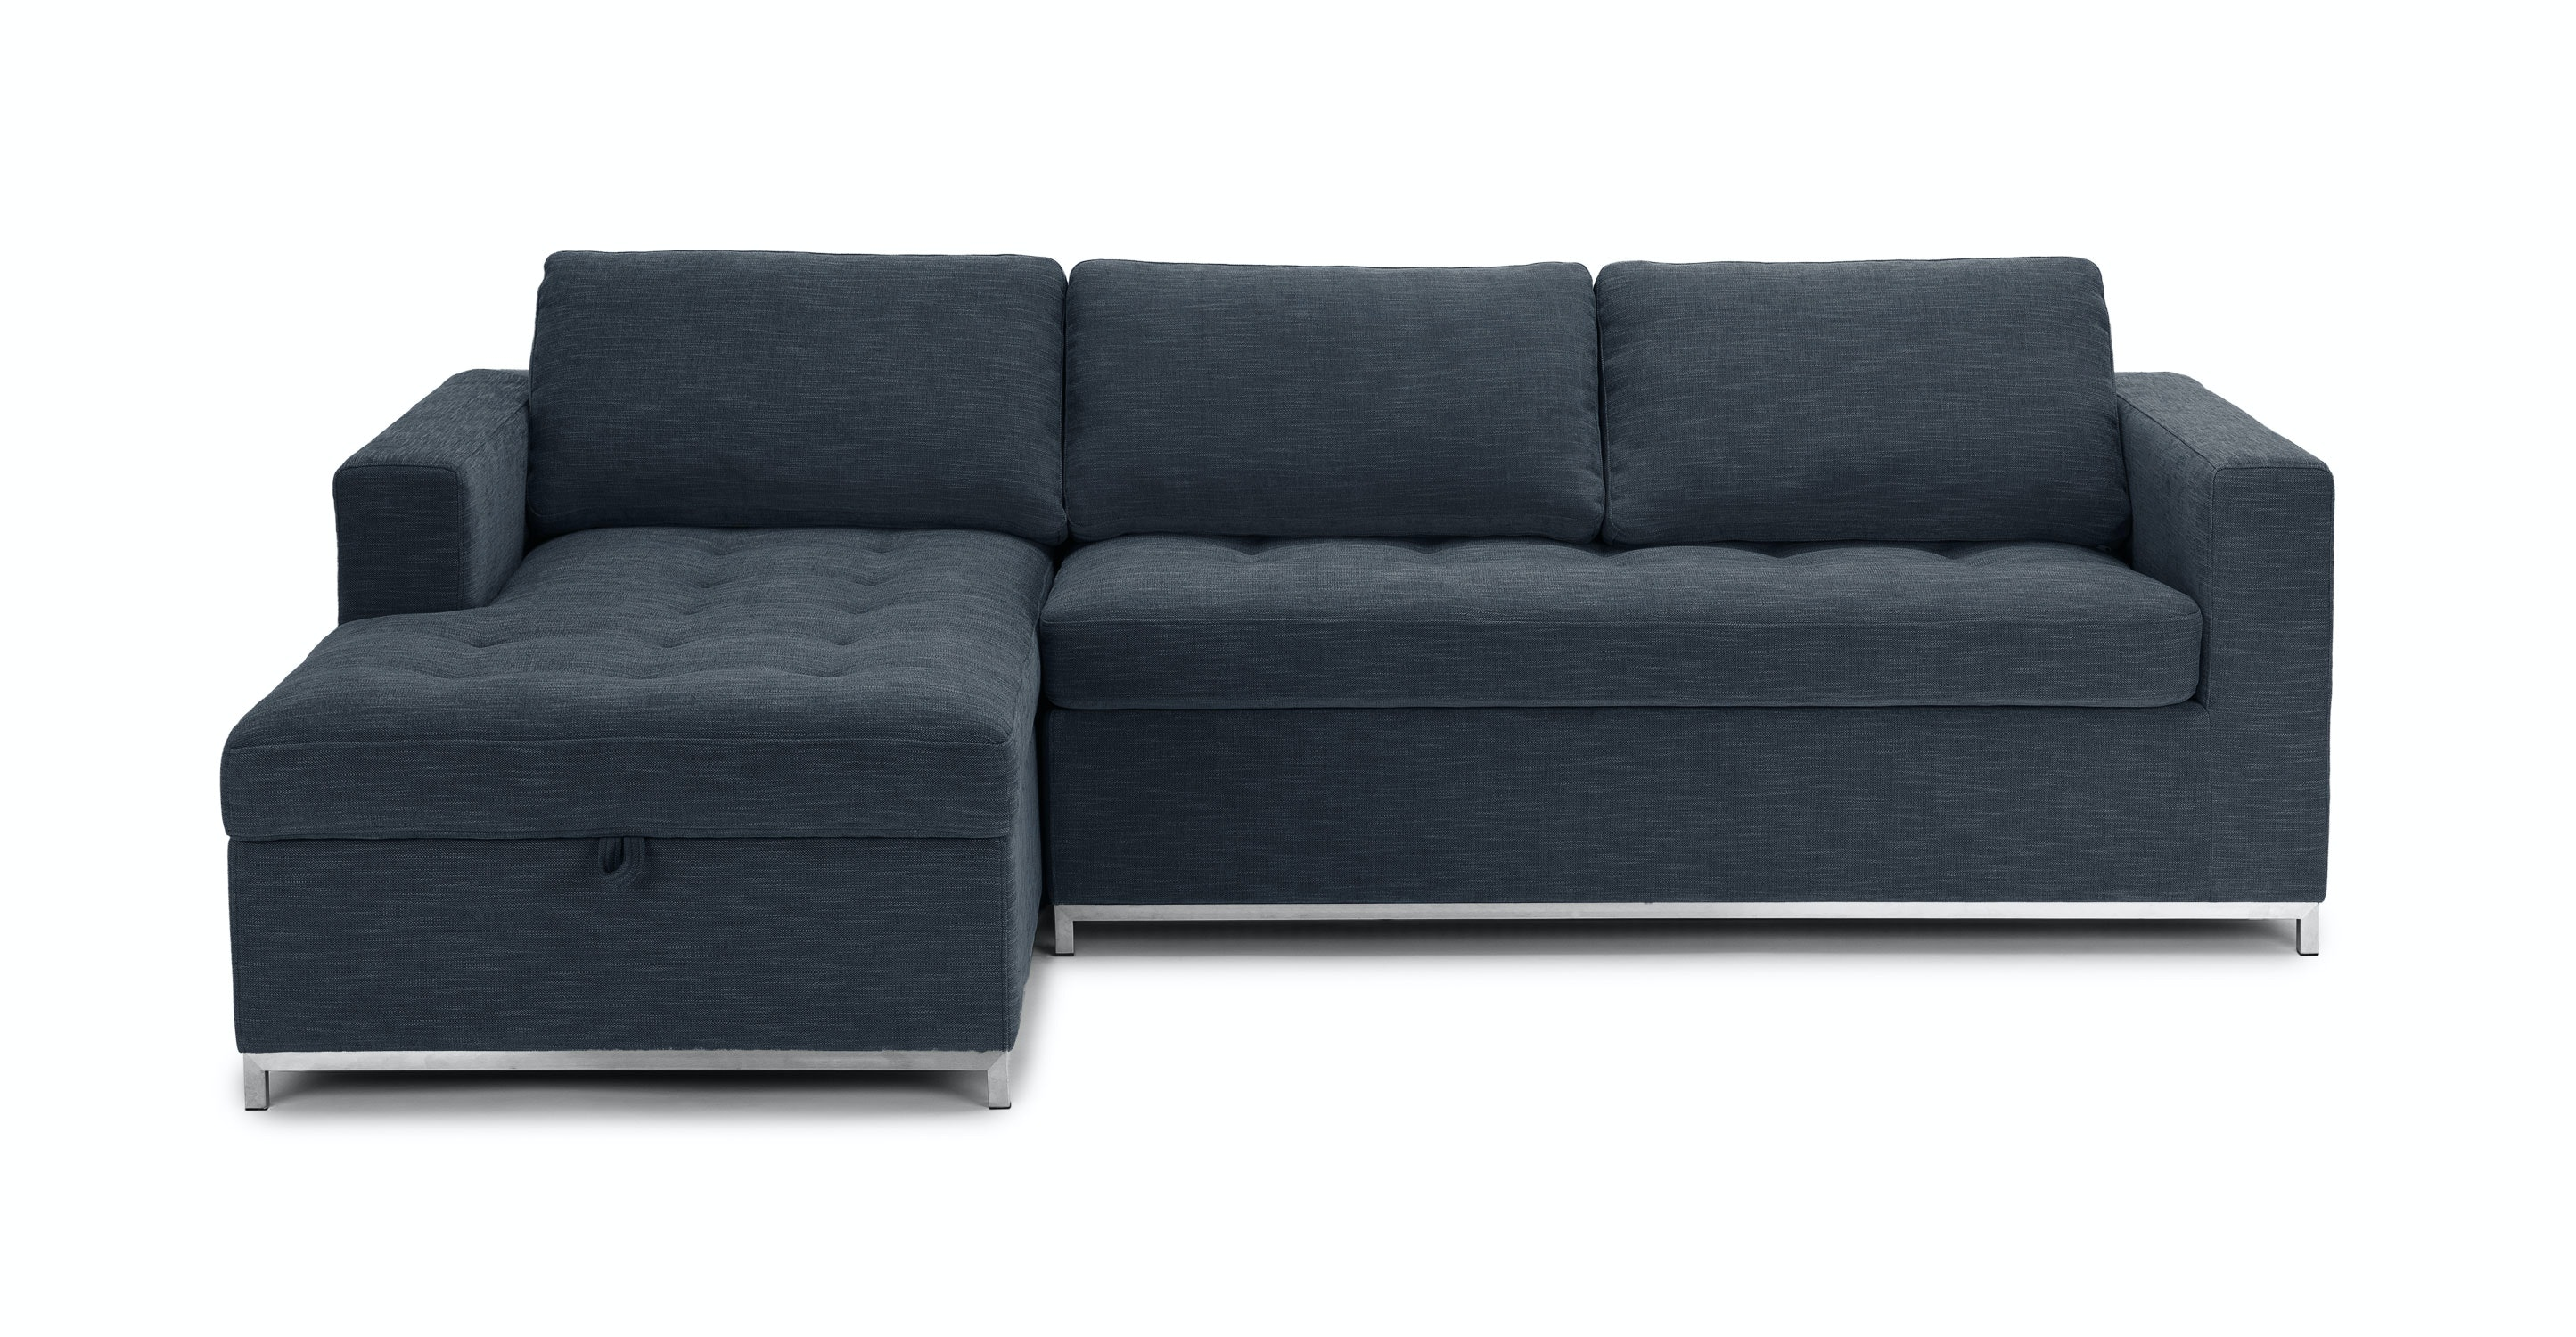 Dark Blue Sofa Bed Left Sectional Metal Legs Article Soma Modern Furniture